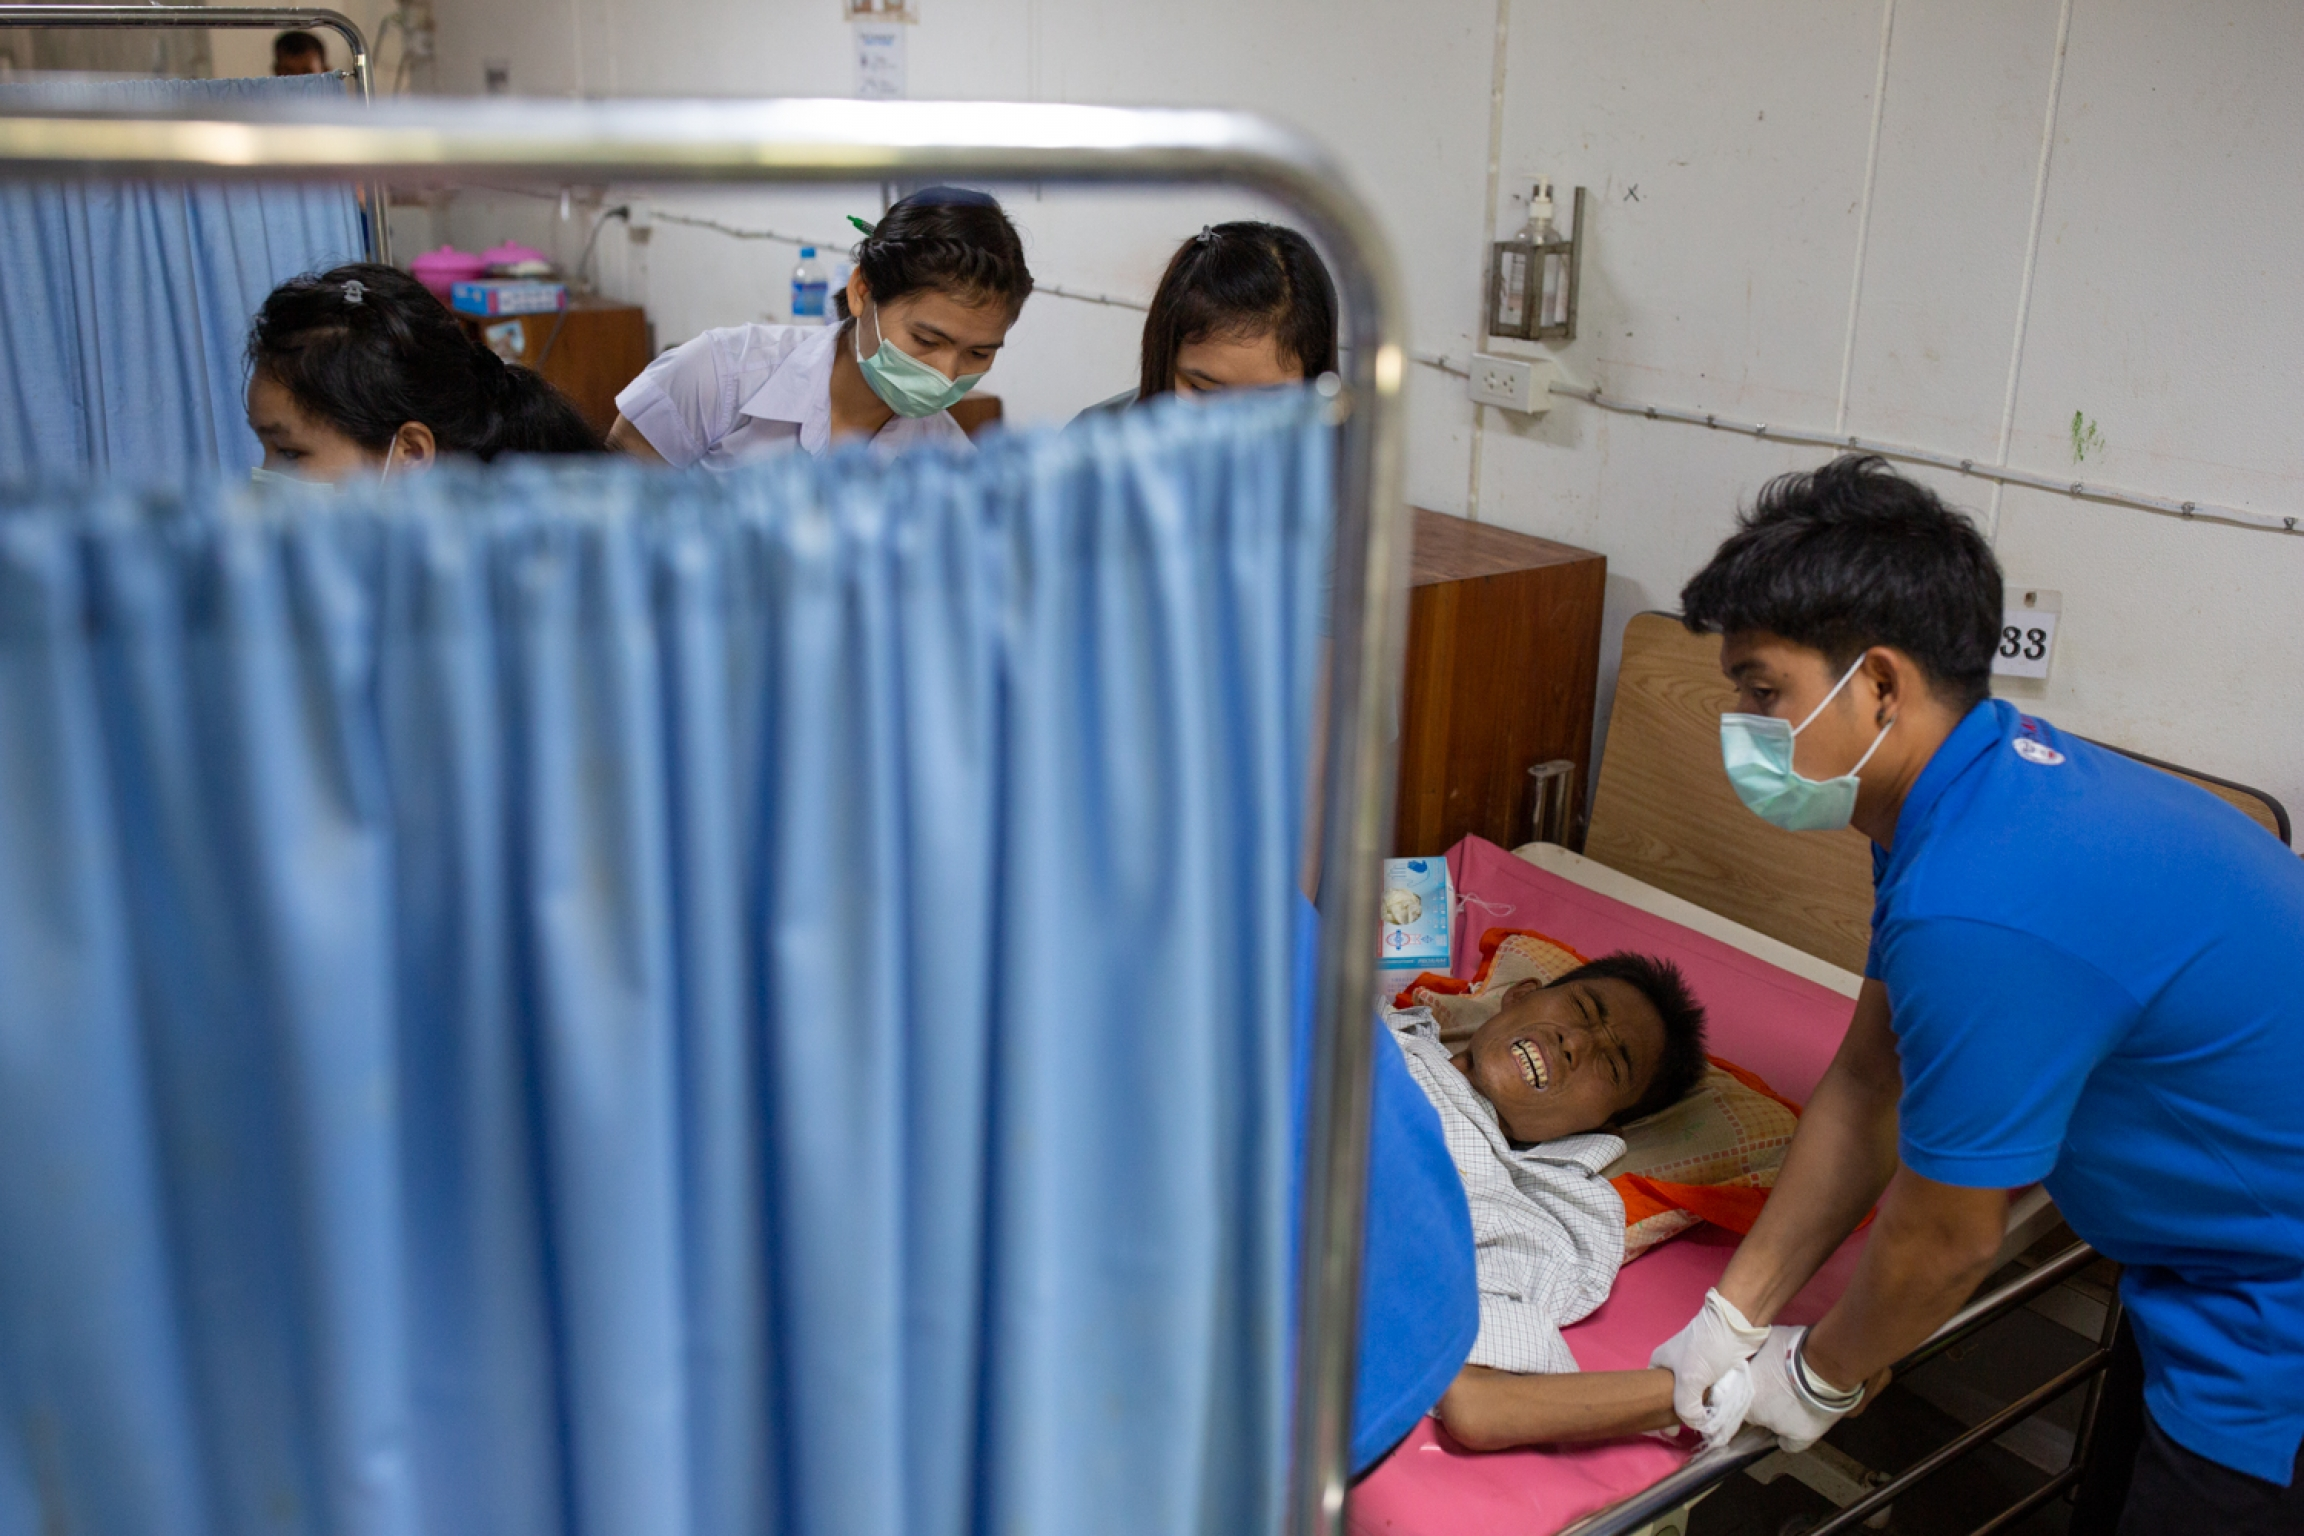 The Mae Tao Clinic is perhaps the largest and most renowned part of a constellation of community-run organizations serving thousands of migrants and refugees from Myanmar living in and around the Thai city of Mae Sot.